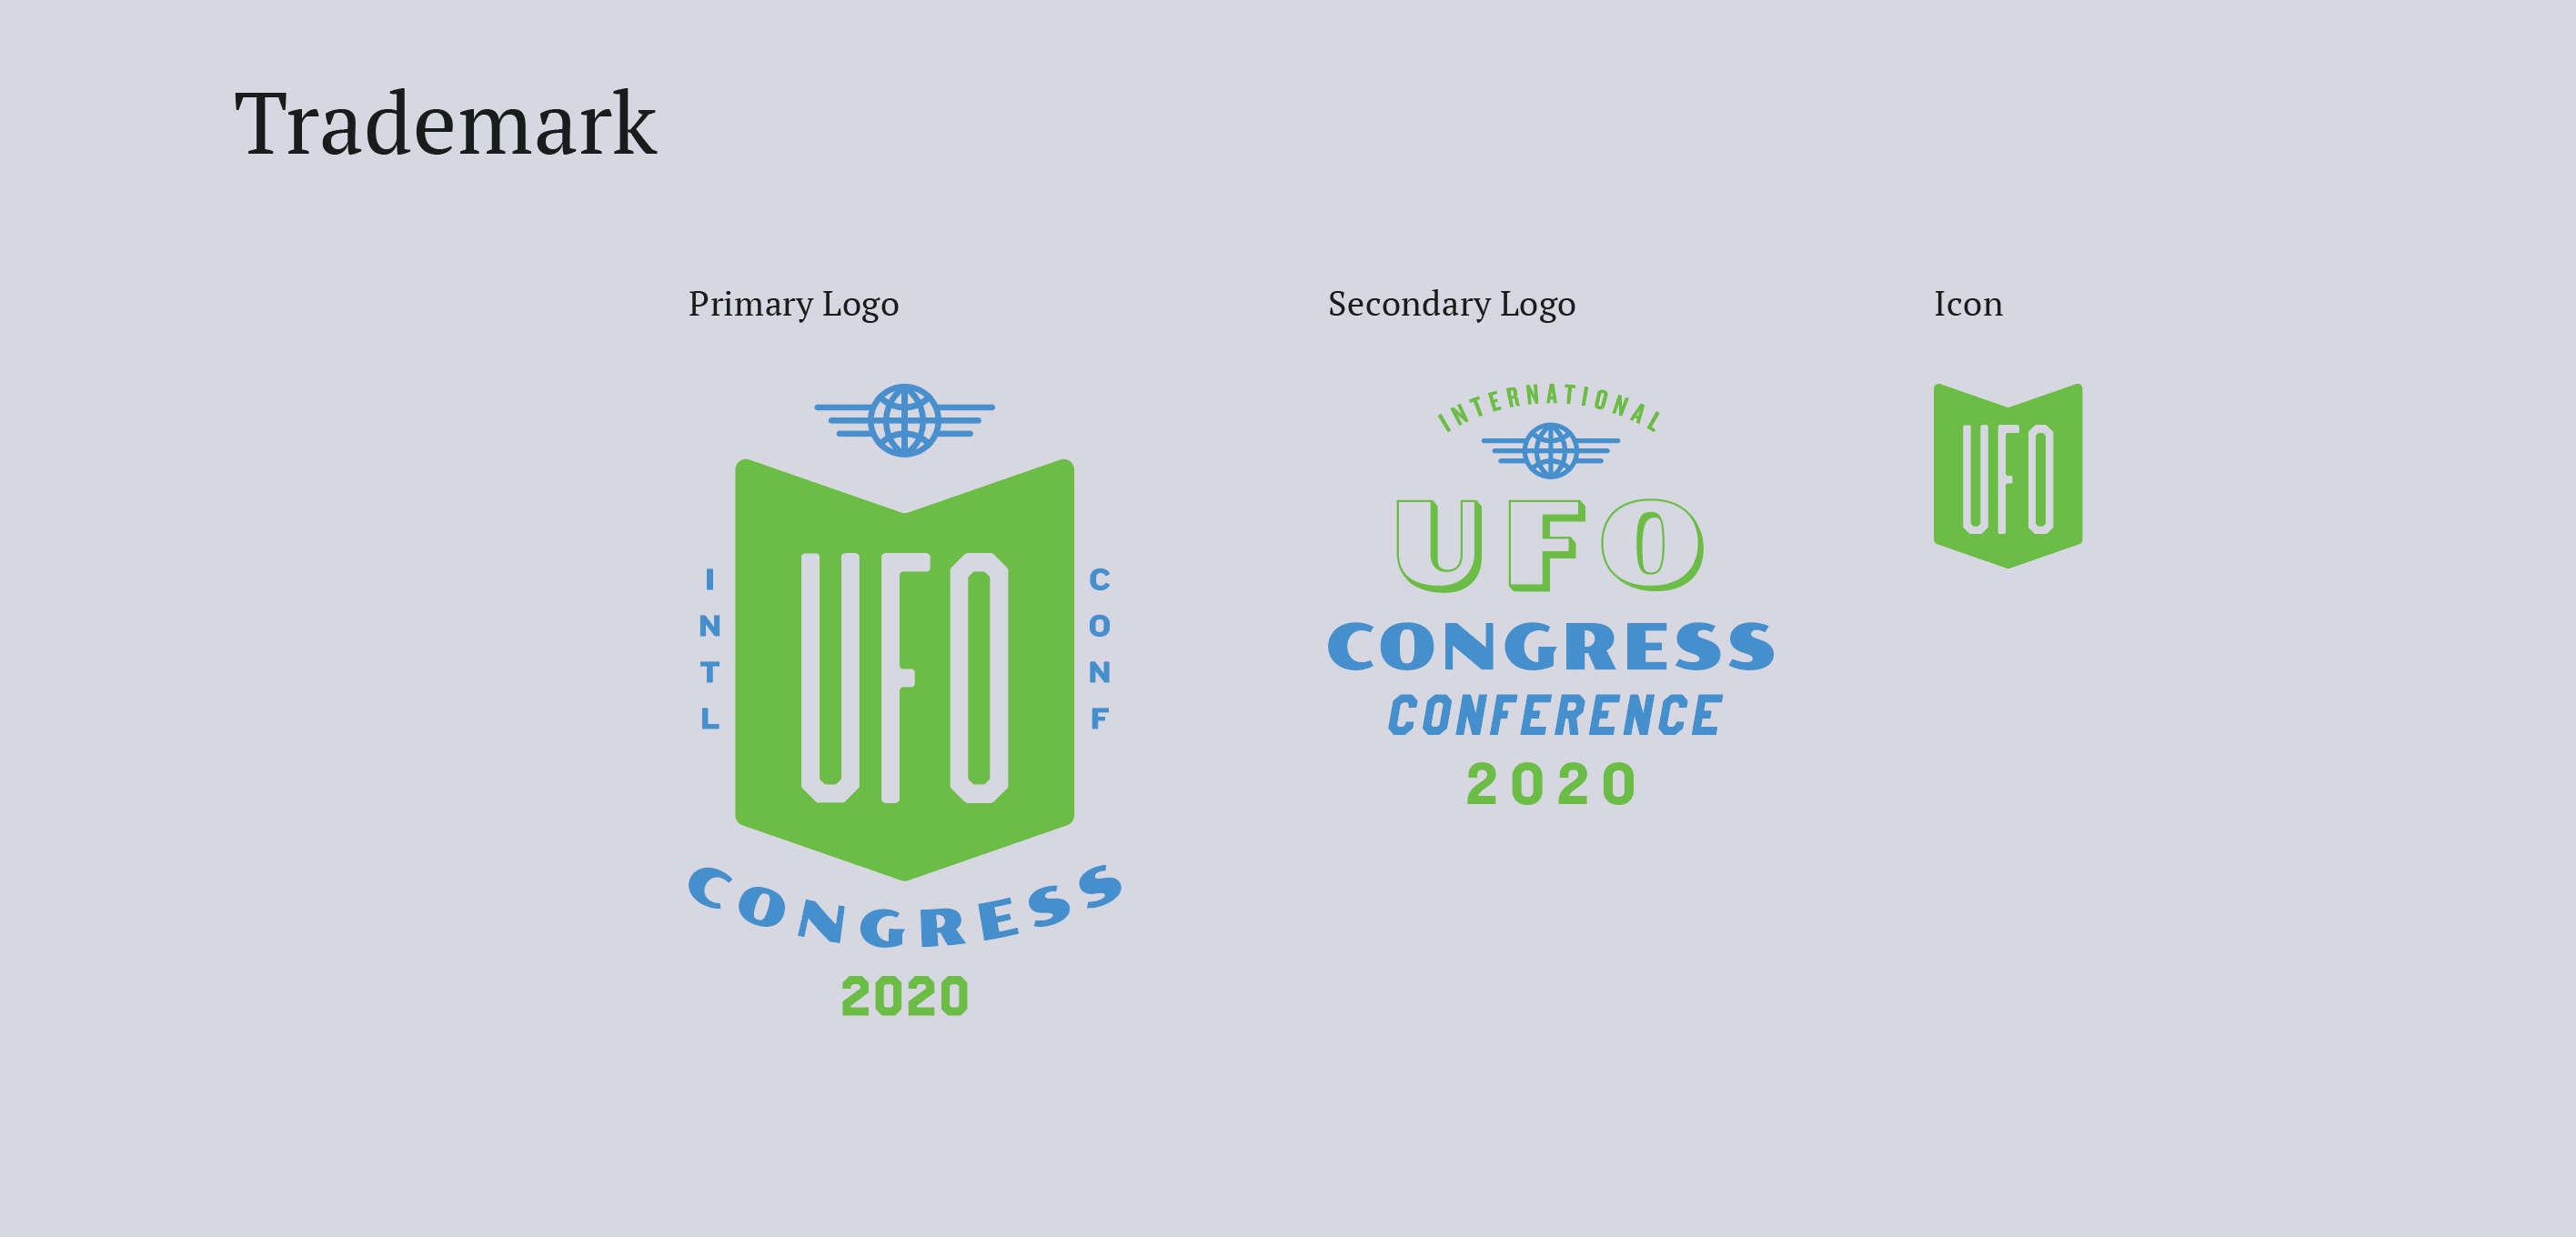 UFO primary, secondary logos and icon